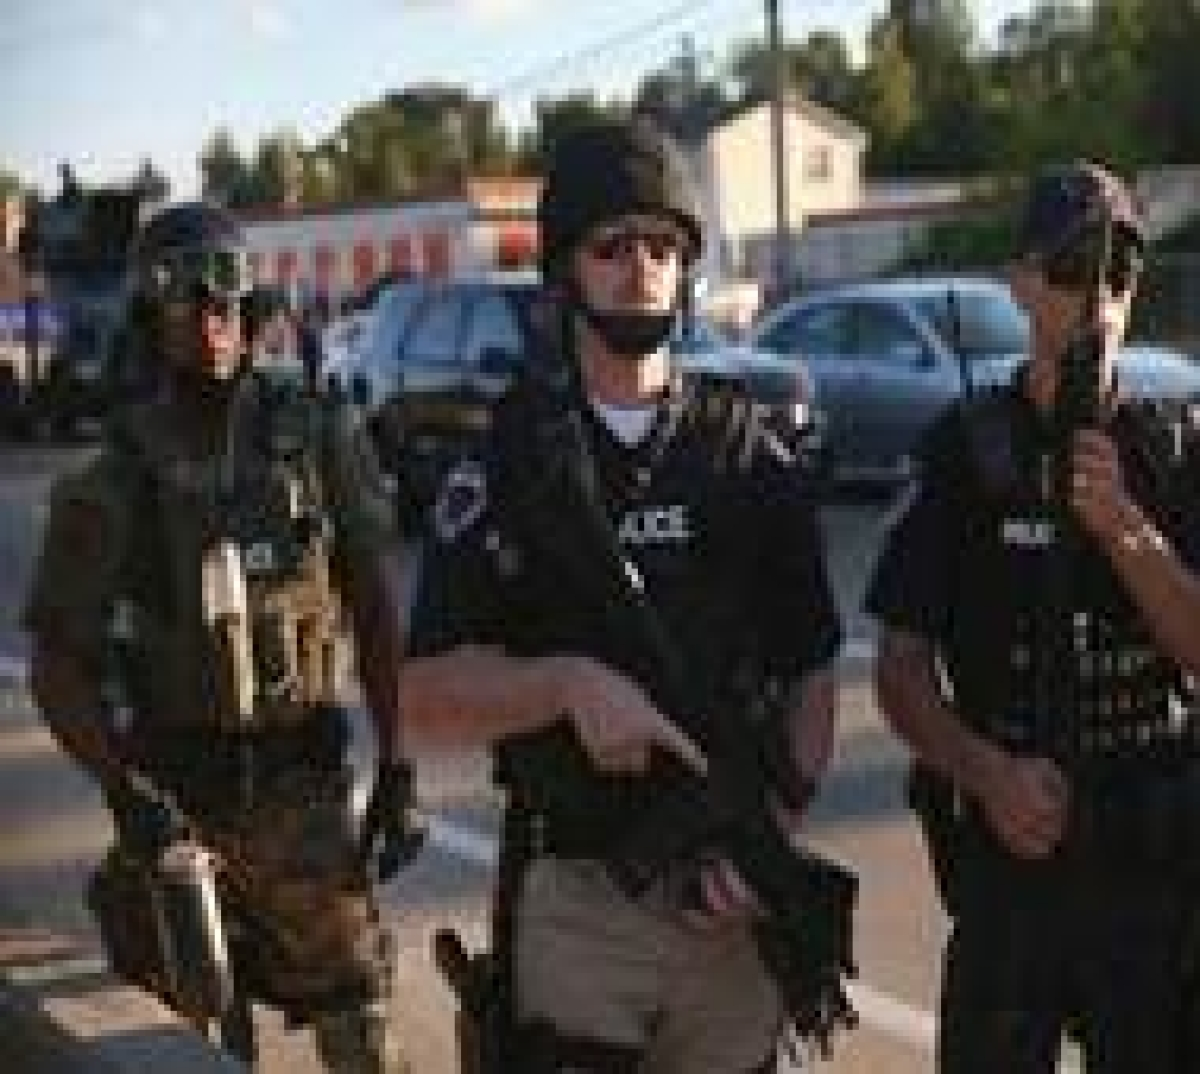 Separate US shootings in two states leave 14 dead